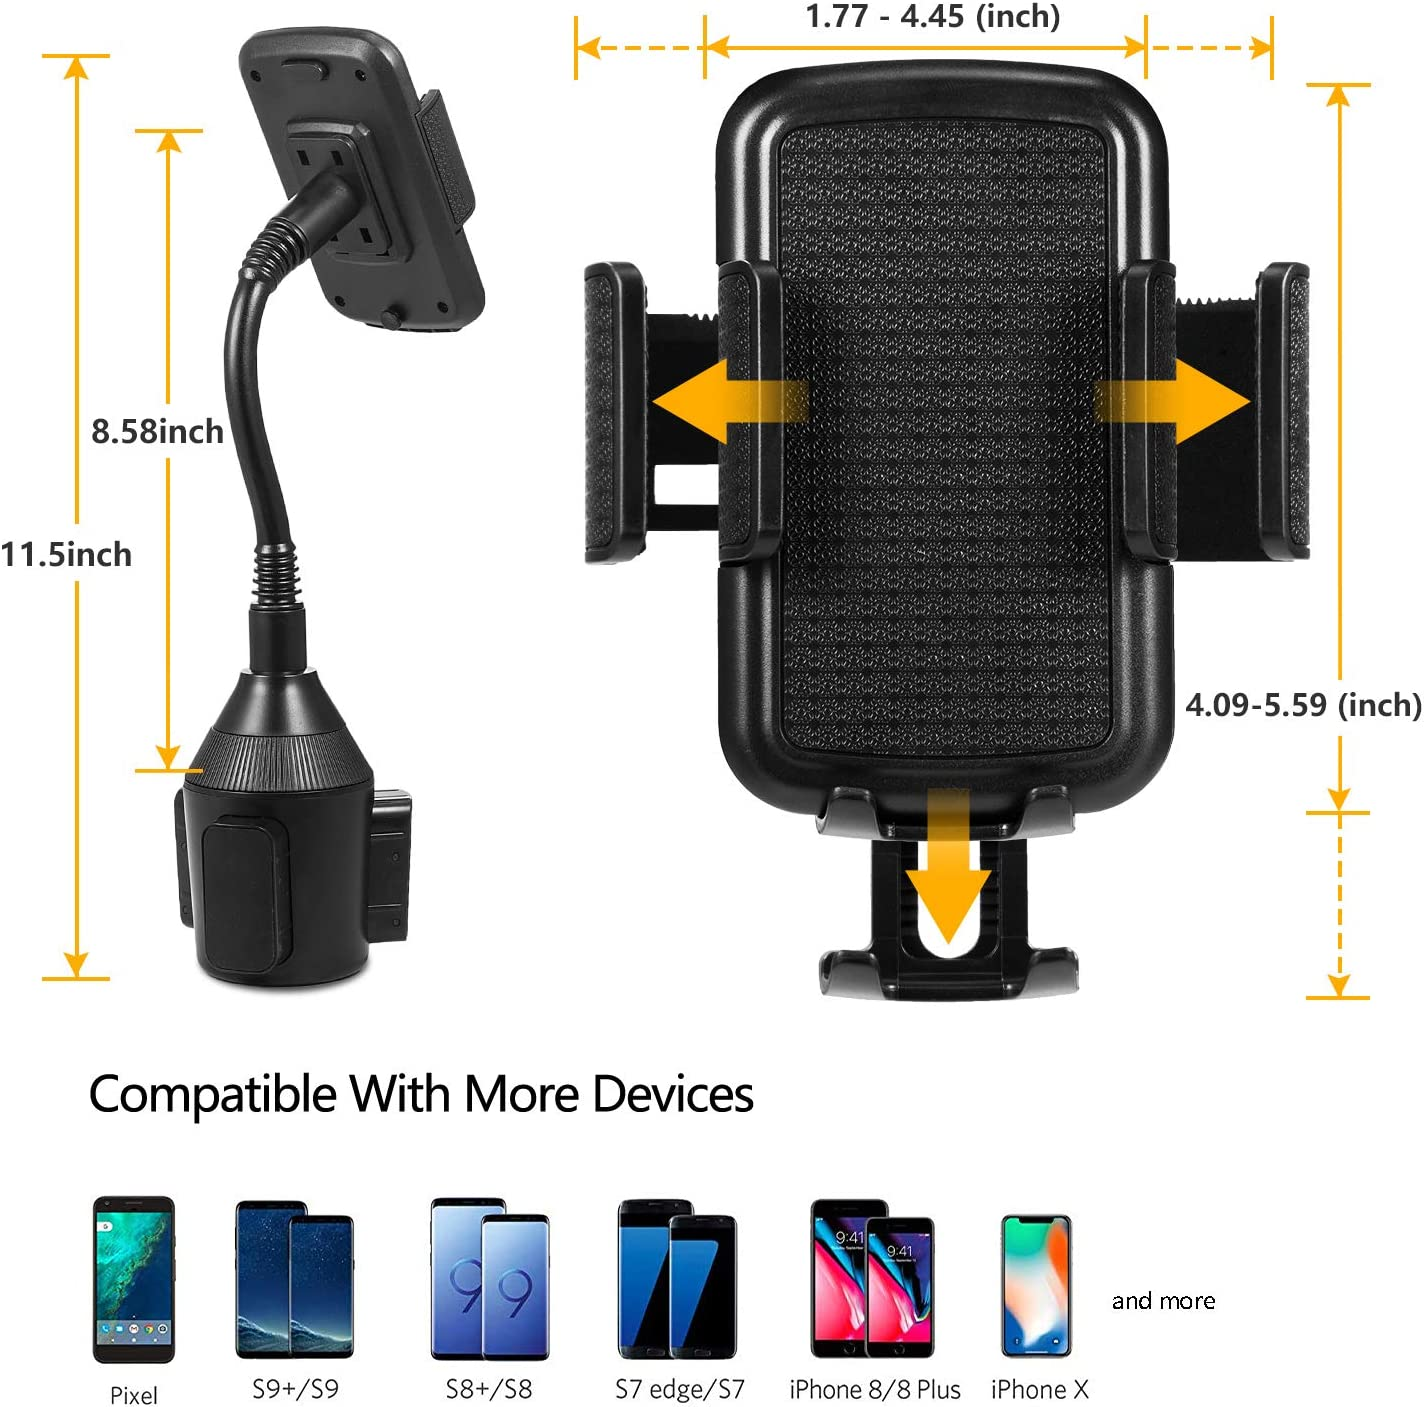 LUXMO Car Cup Holder Phone Mount Adjustable Cup Phone Holder Cradle Car Mount for Cell Phone iPhone Xs XR Xs Max X 8 7 Plus Galaxy S9 S8 S7 Upgrade Car Phone Cupholder Mount